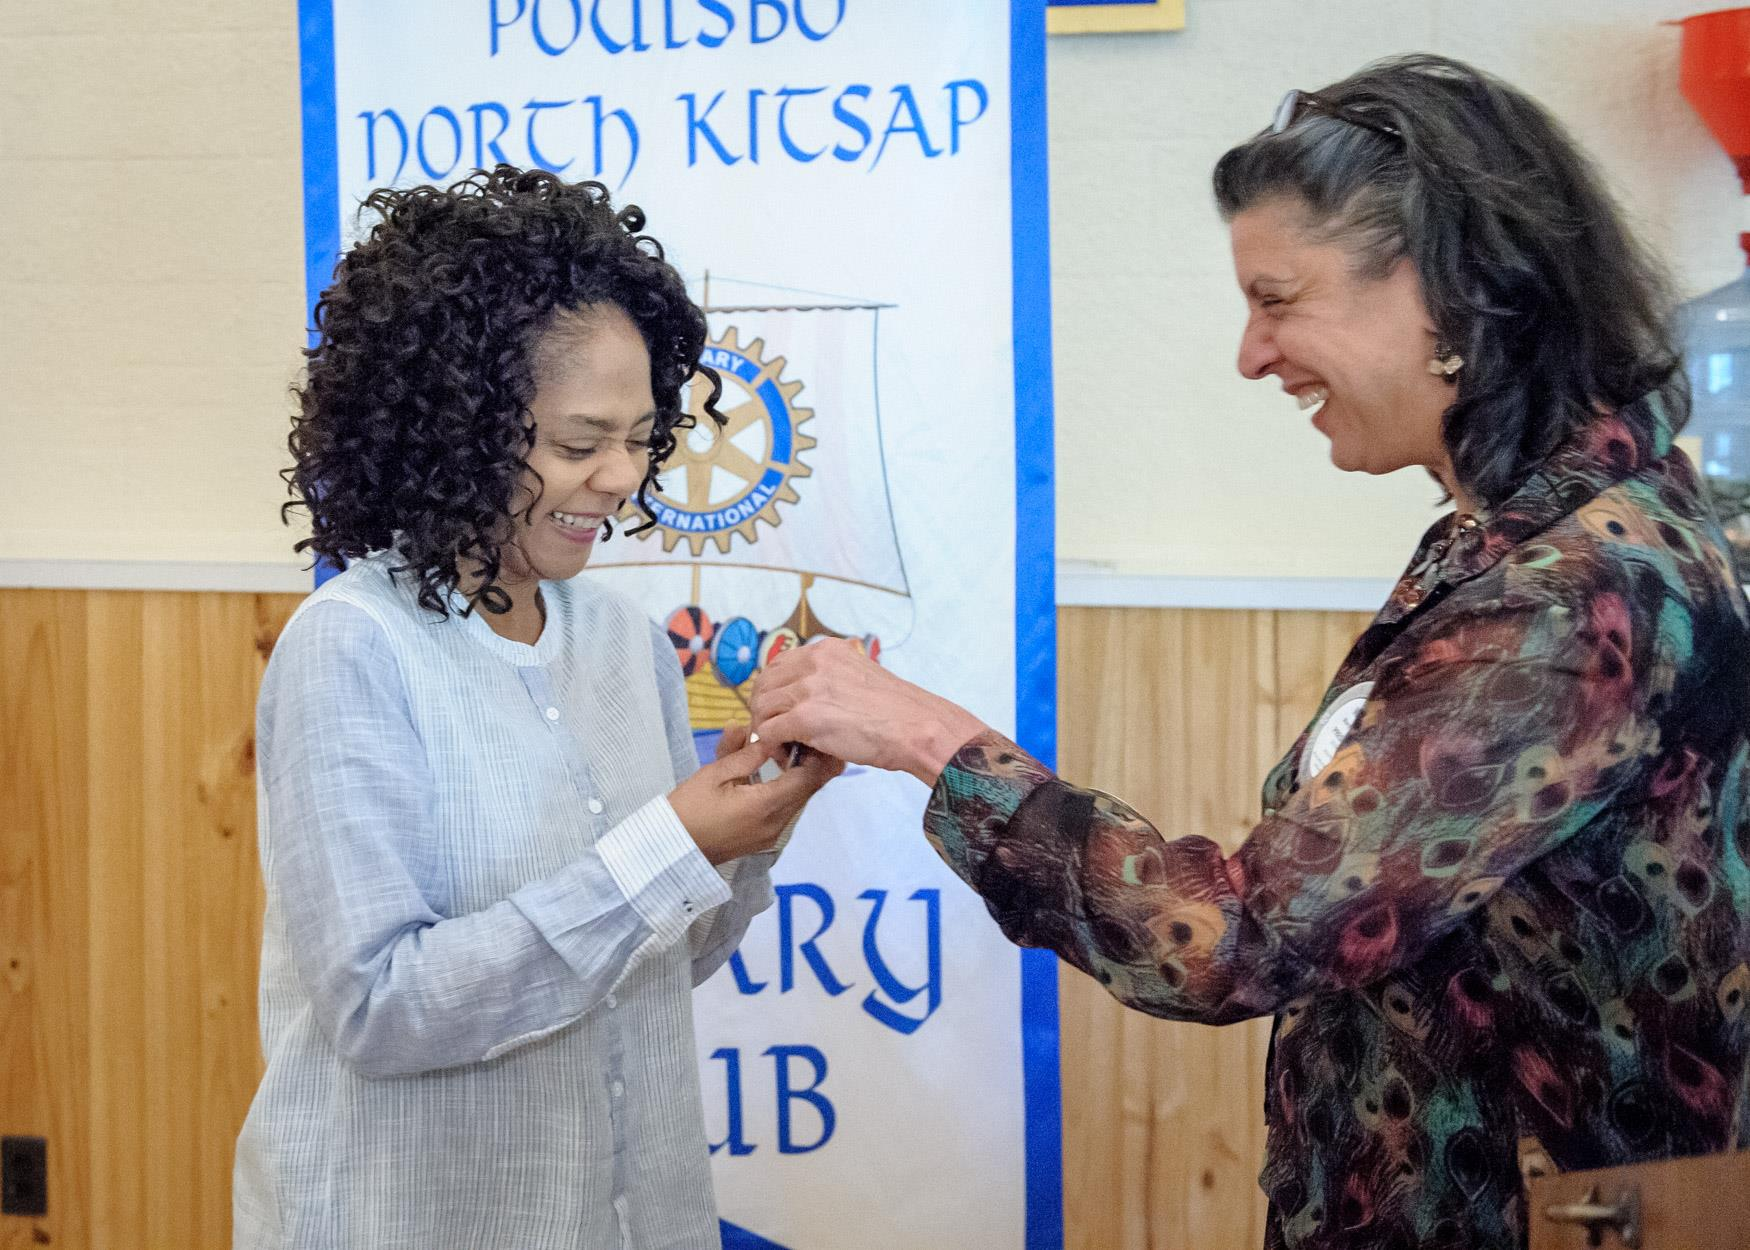 Alexis Foster received her Blue Badge